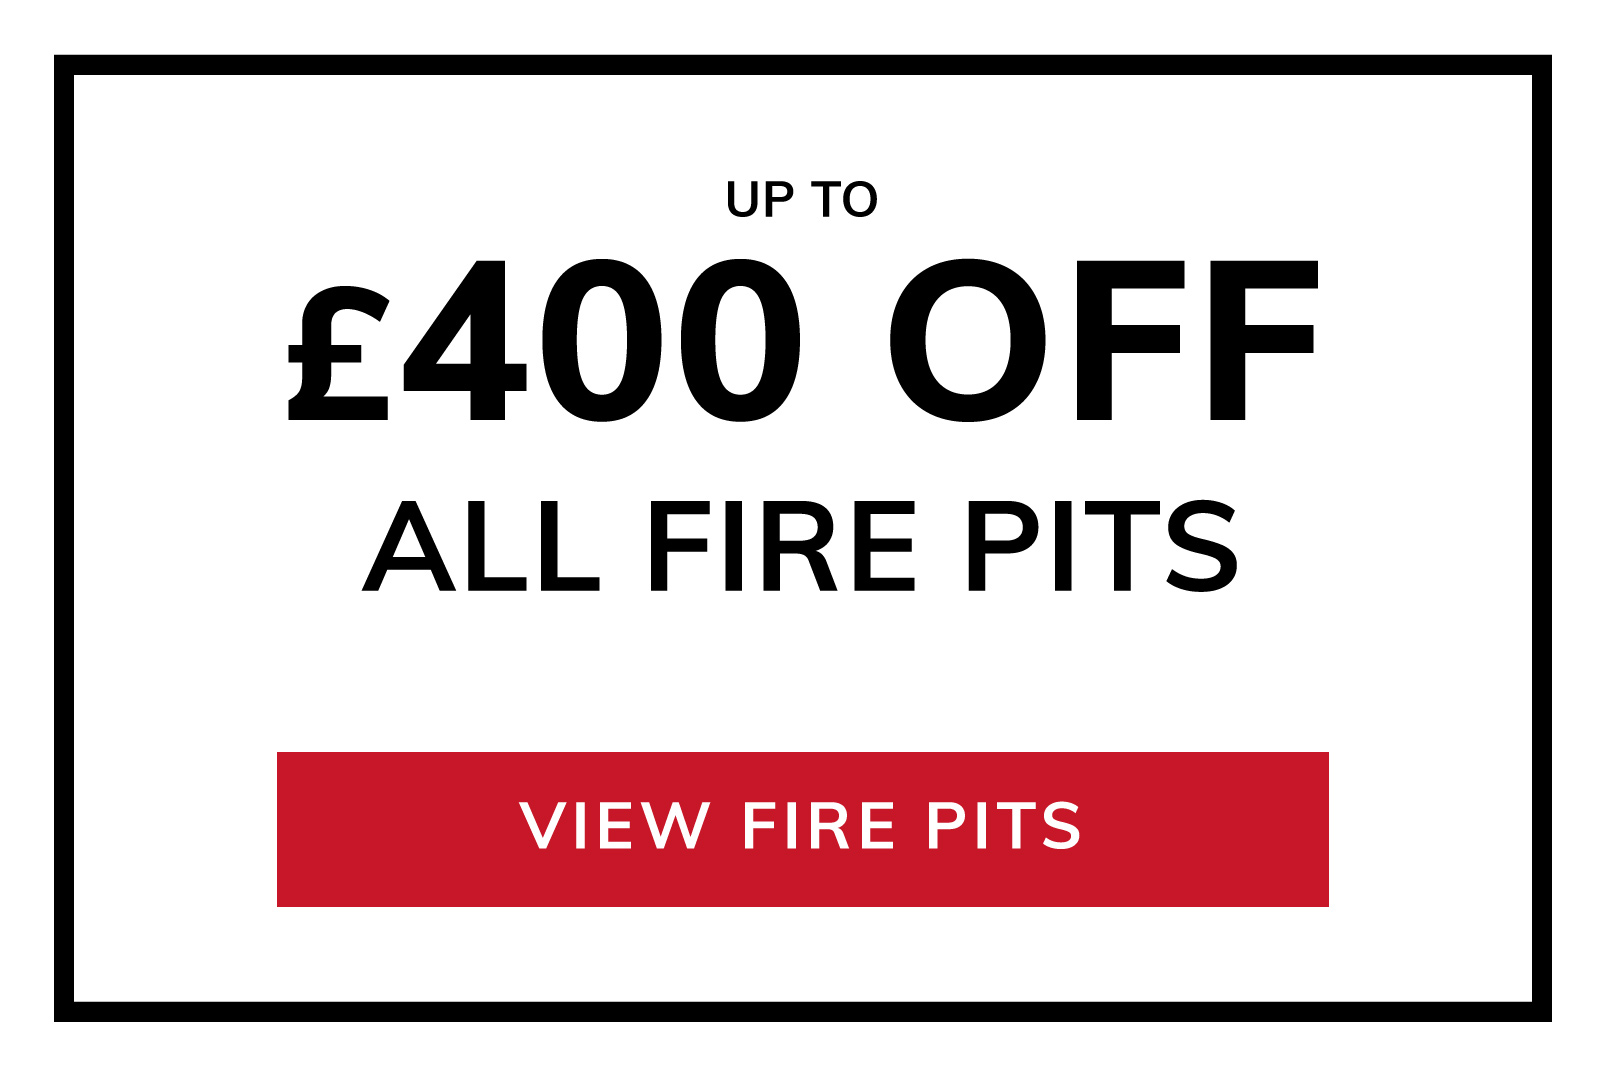 Up To £400 OFF Fire Pit Sets